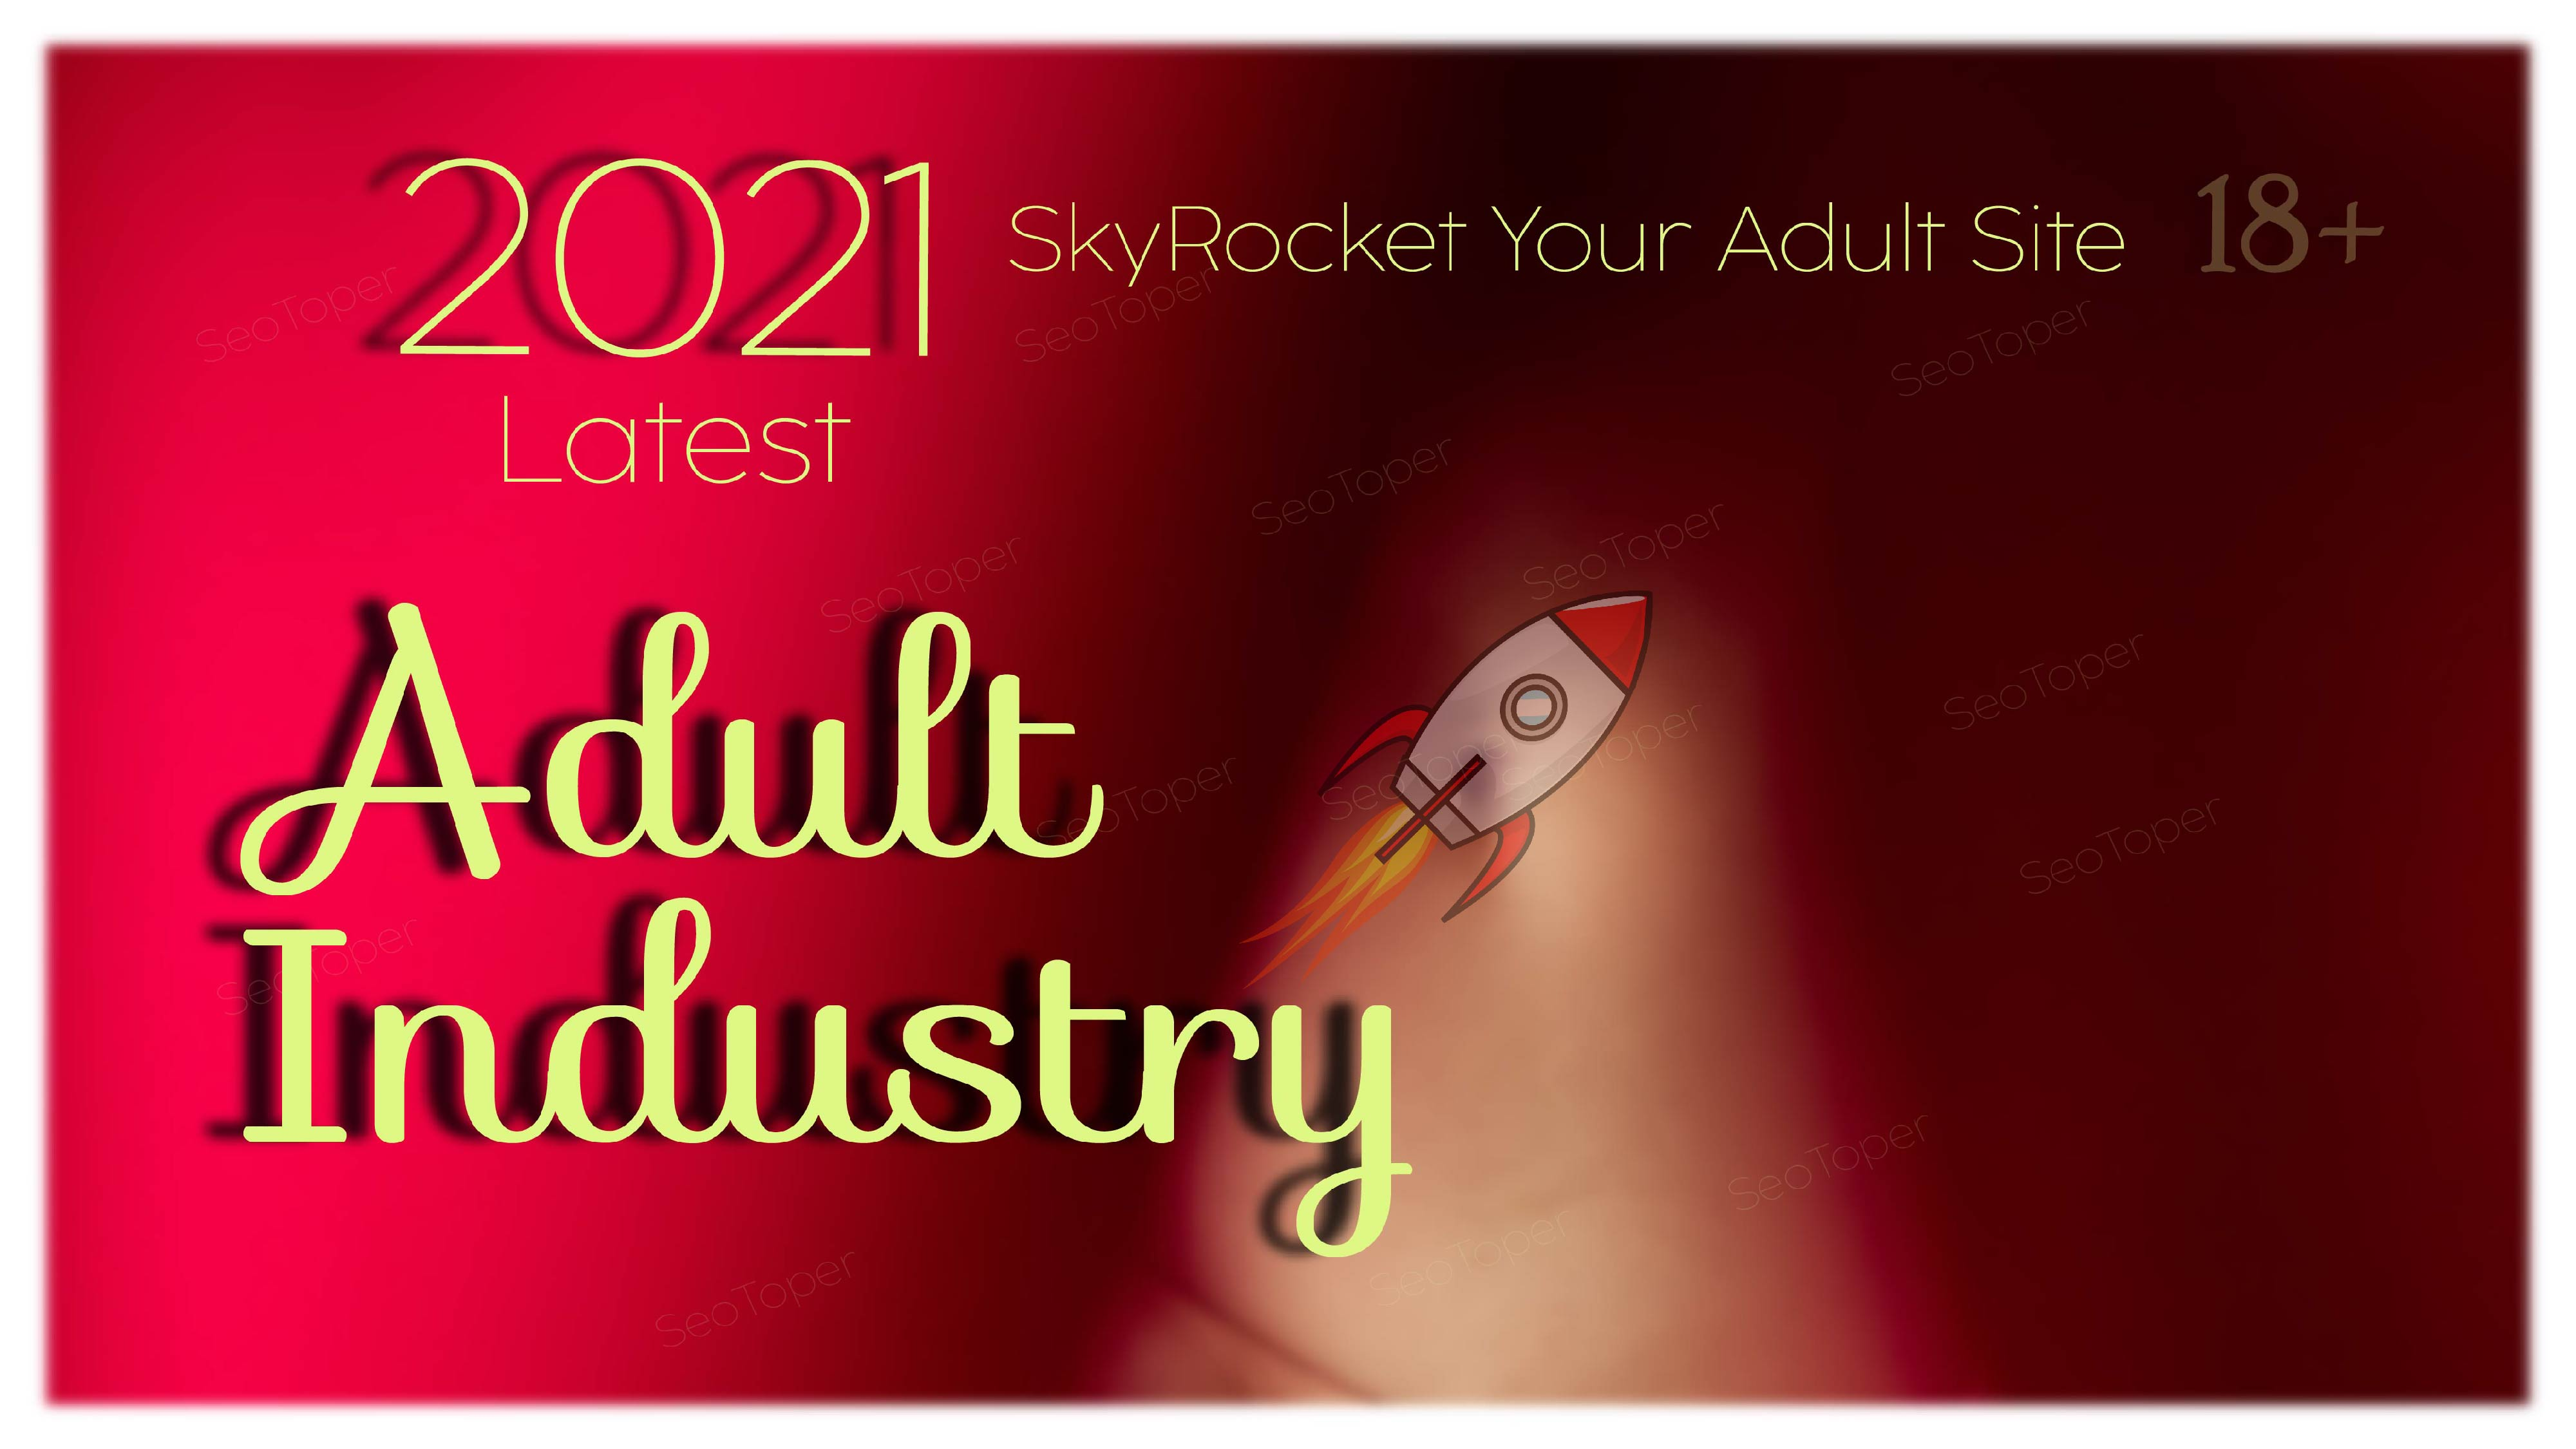 2021 Latest Adult site 450+ Do follow Backlinks Up to pr9 for rank on Google fo